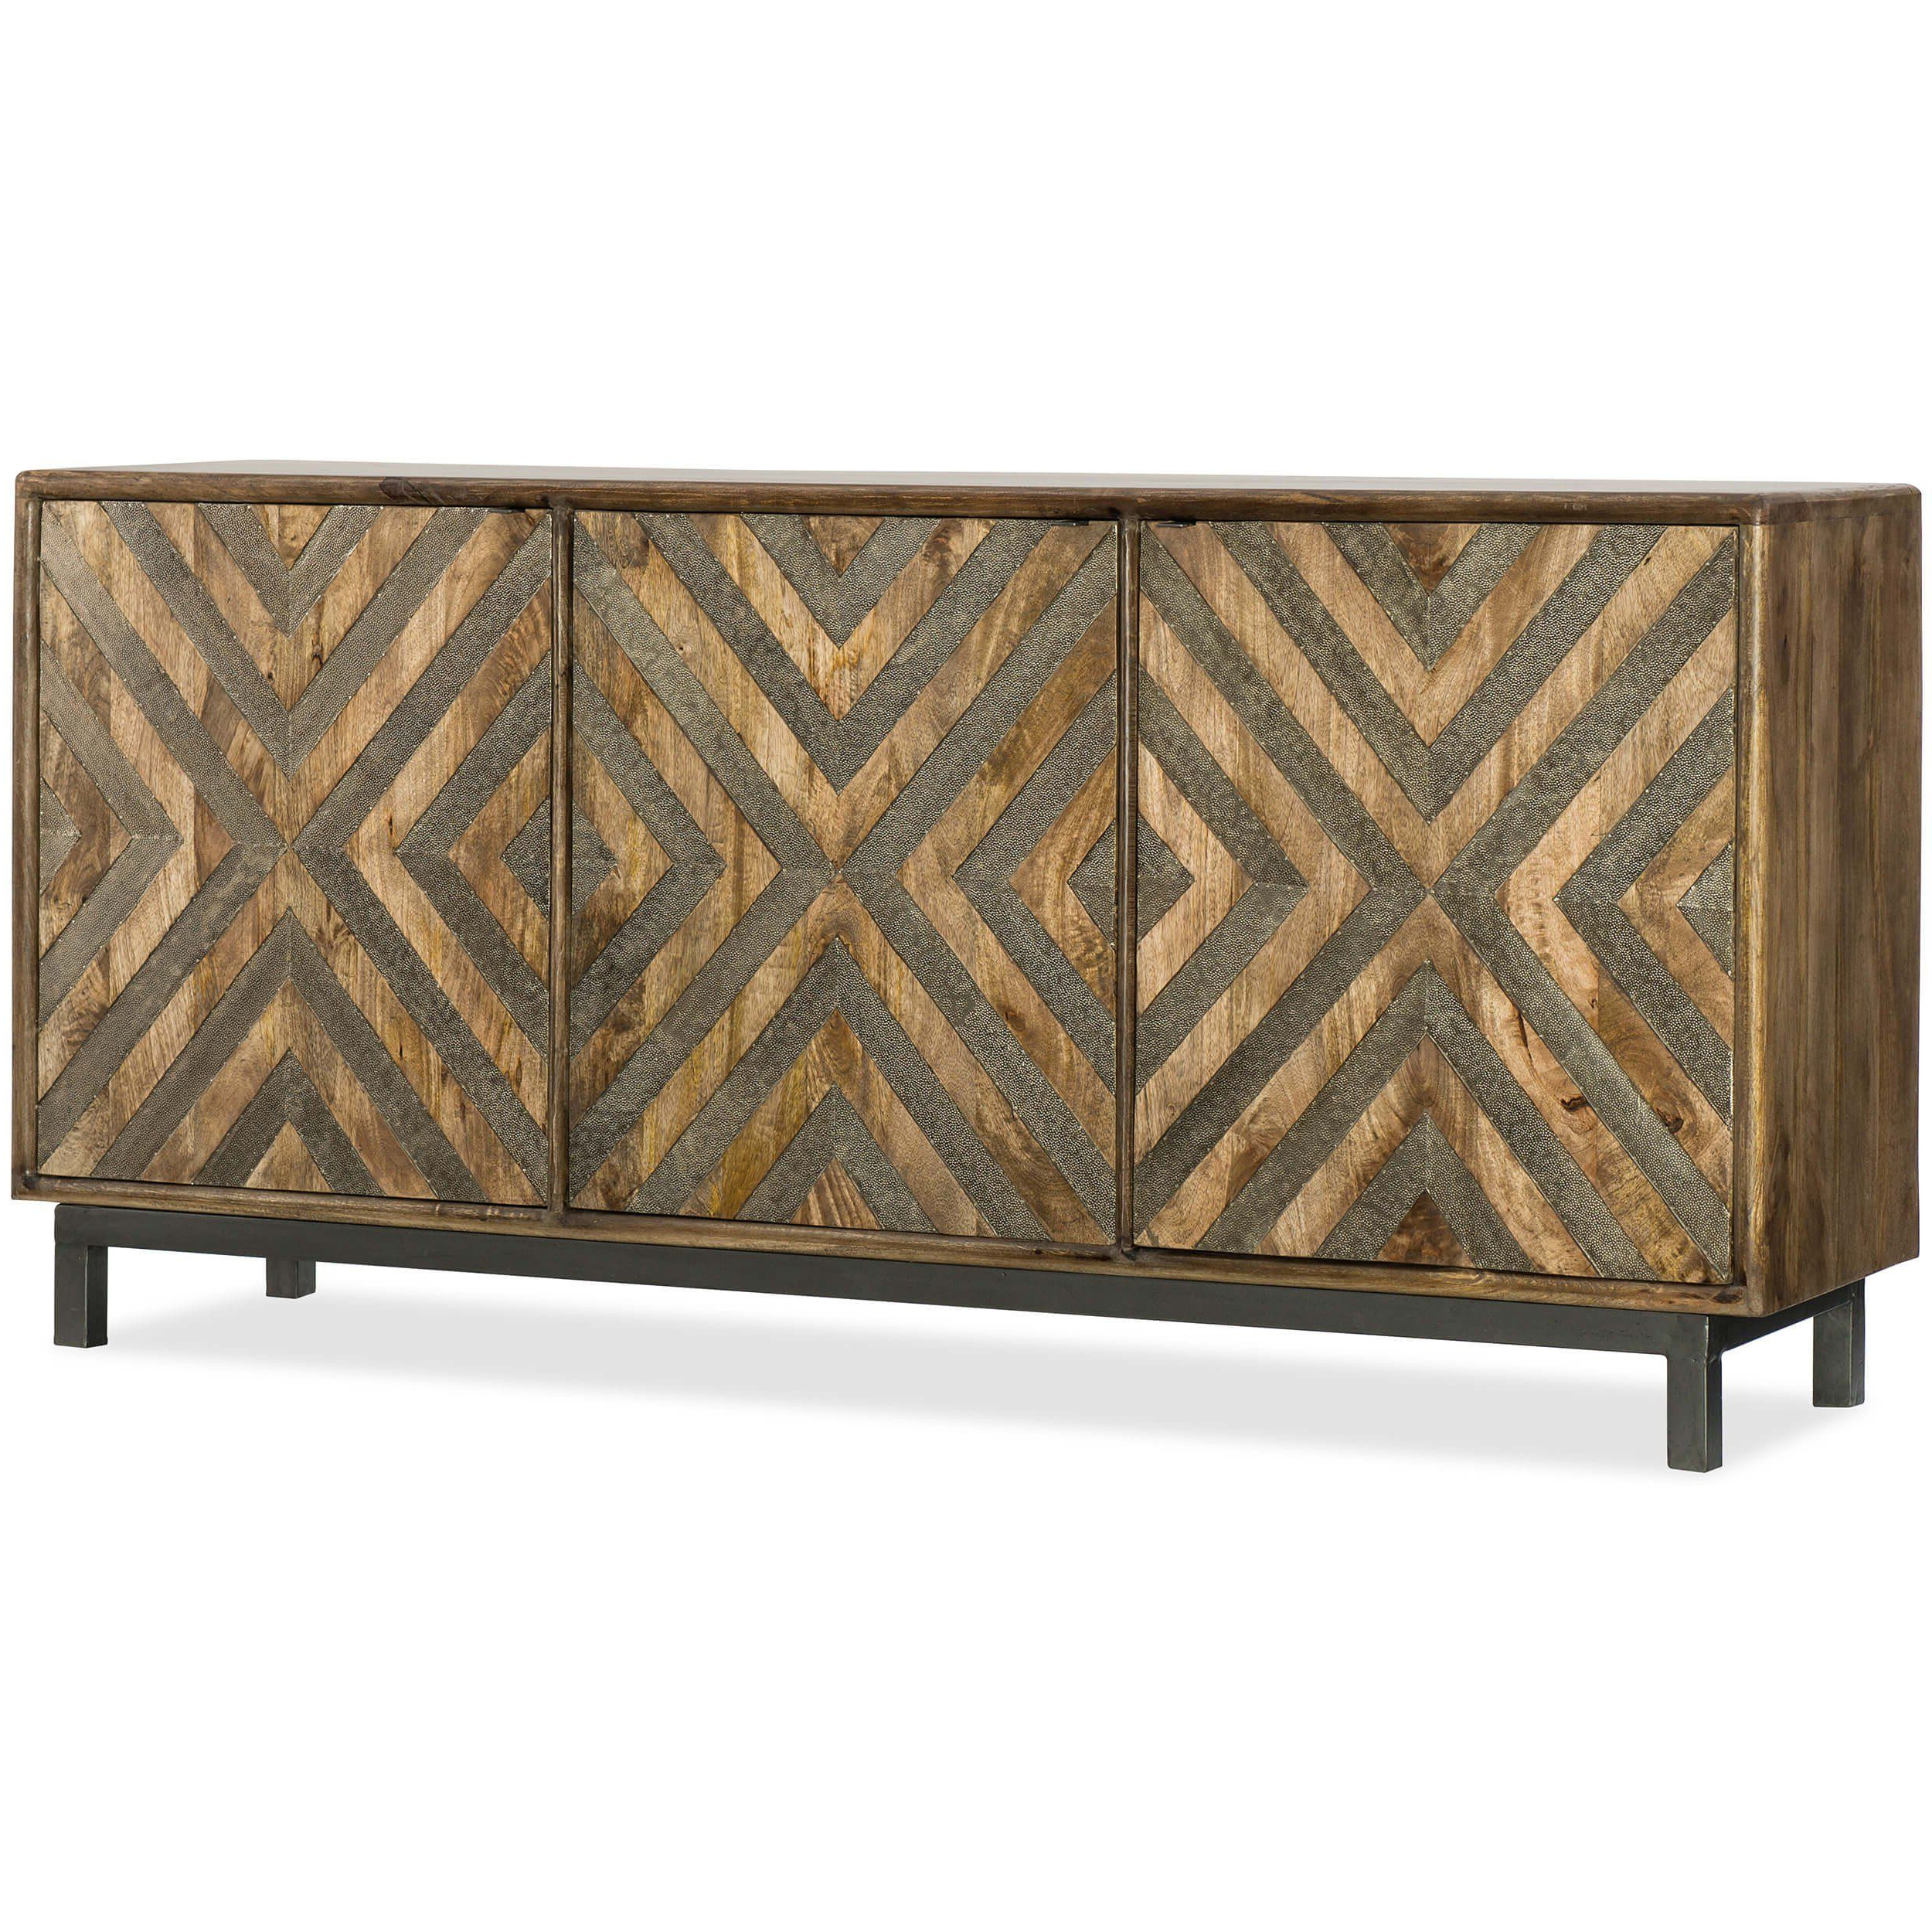 Serramonte Entertainment Console | Pinterest | Consoles, Modern Intended For Parsons White Marble Top & Stainless Steel Base 48X16 Console Tables (View 18 of 20)